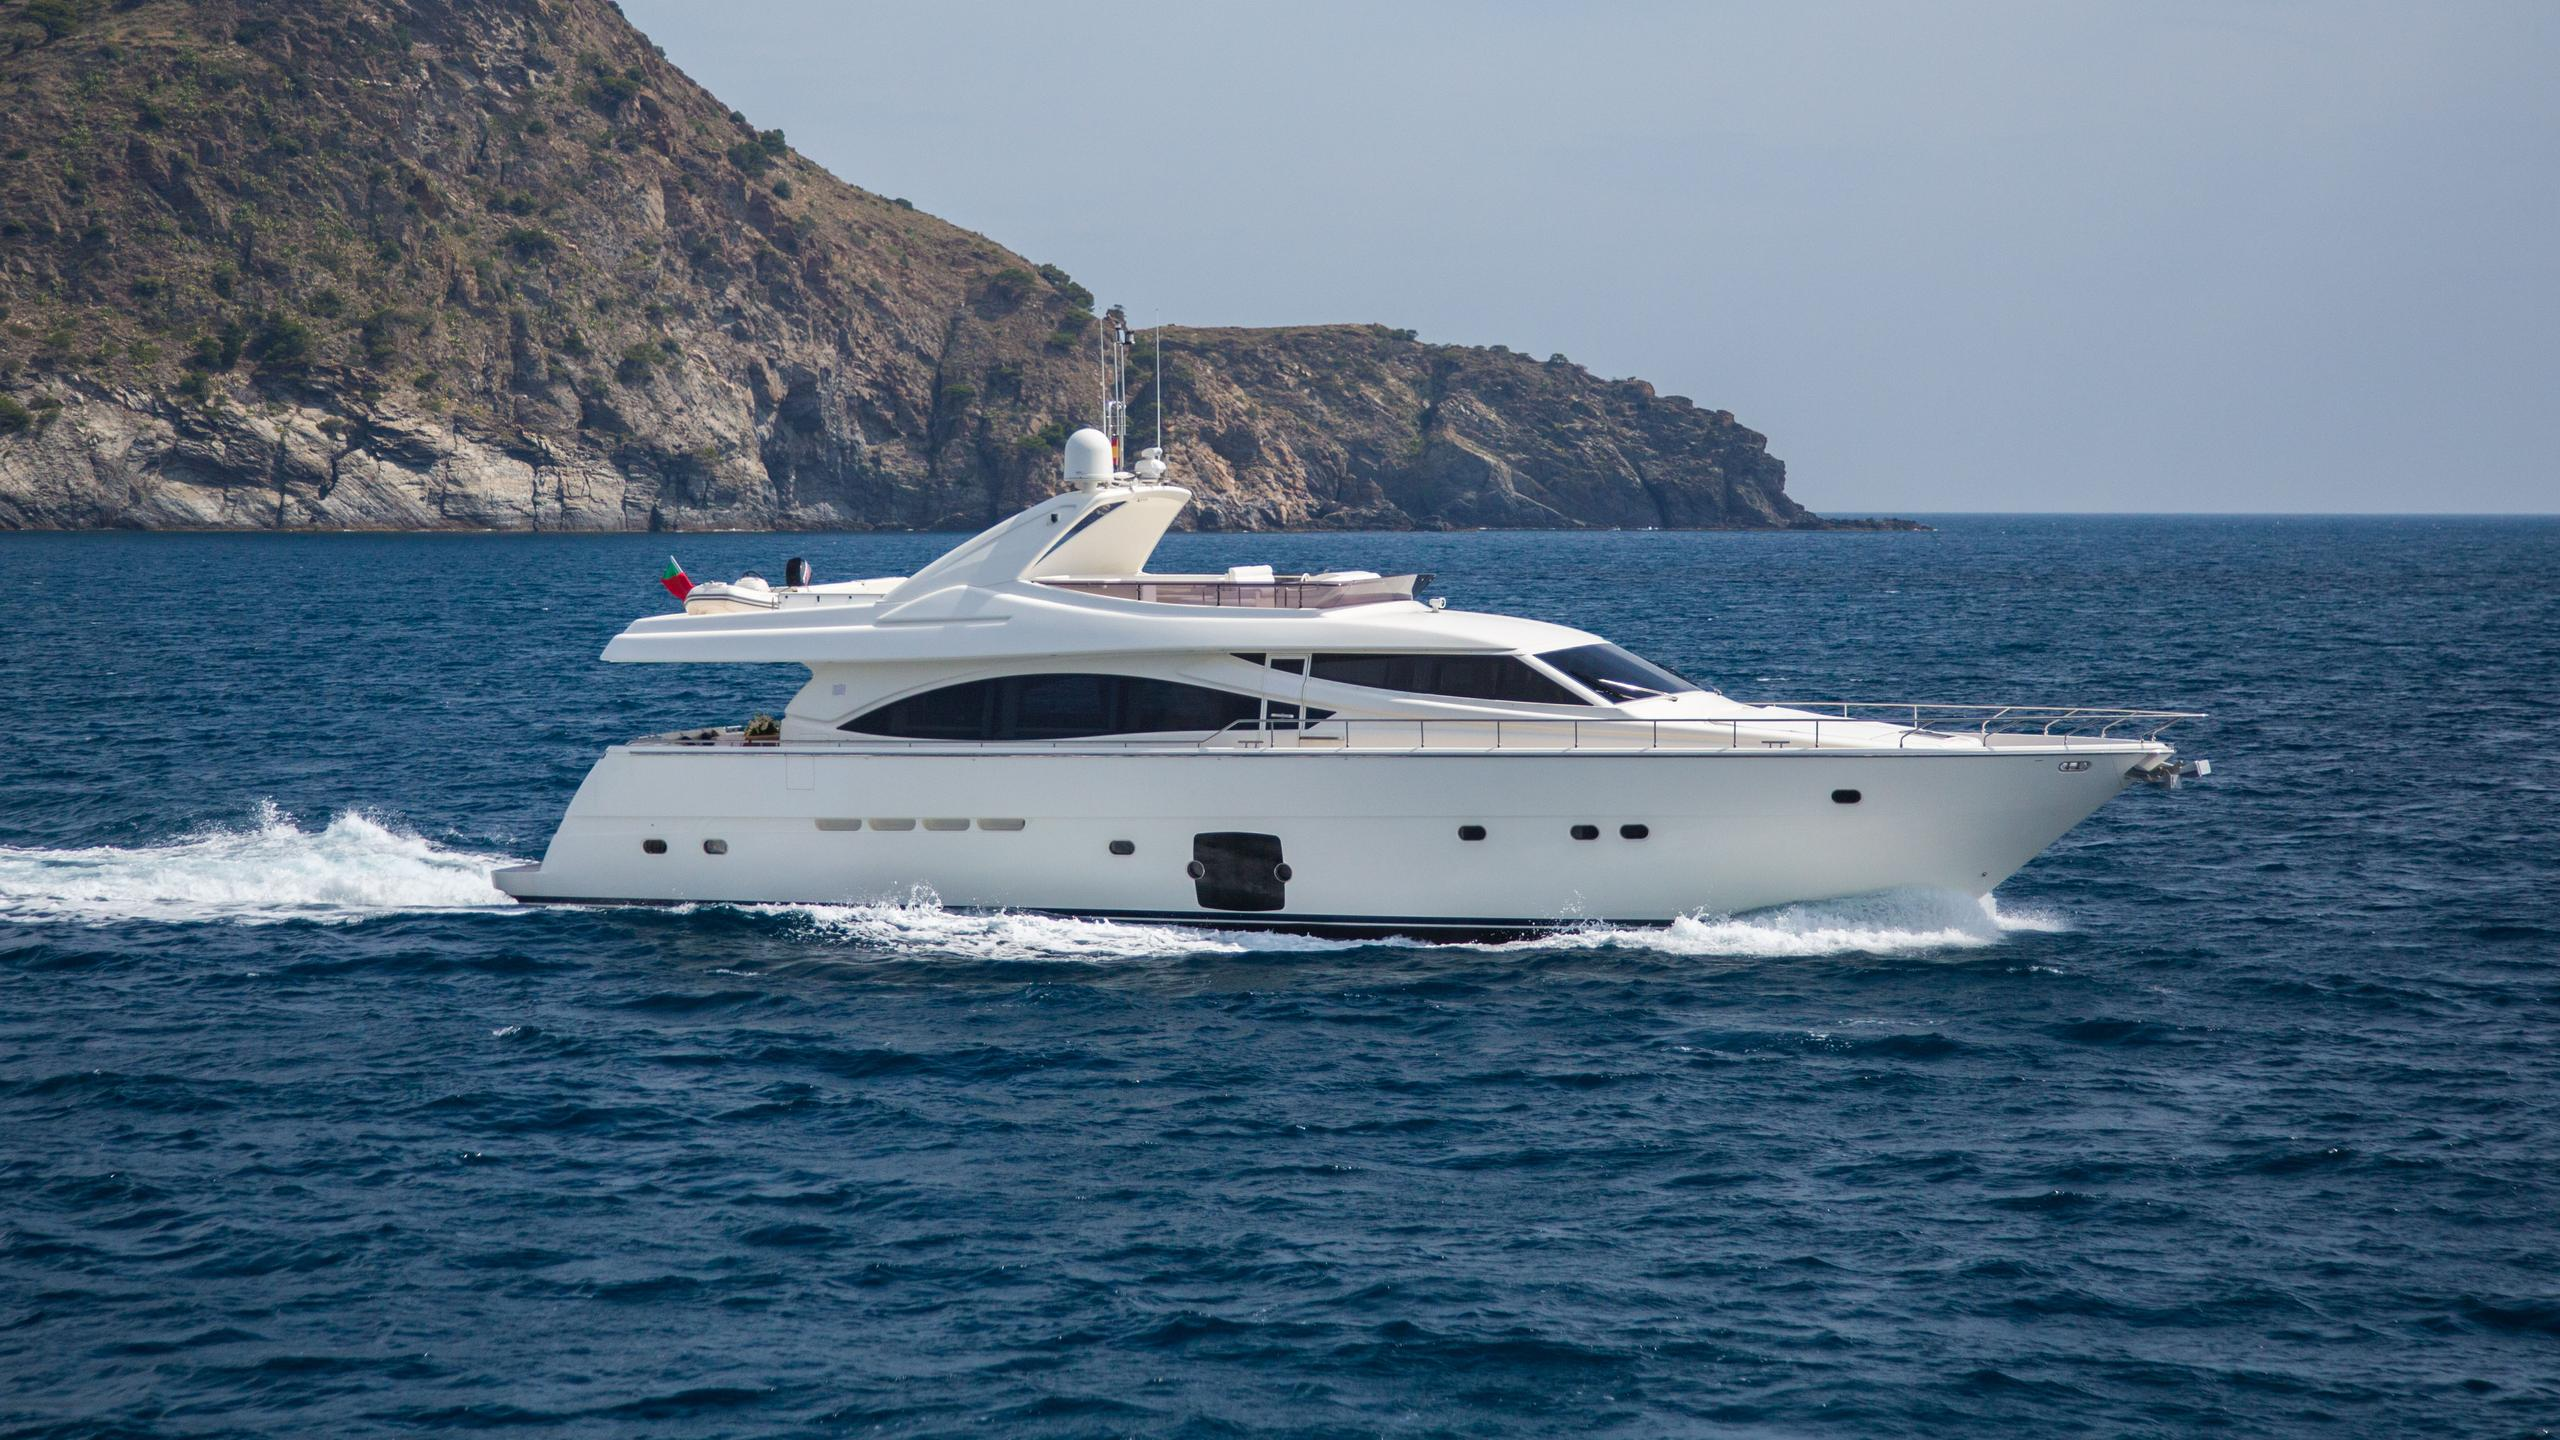 monticello-ii-yacht-for-charter-profile